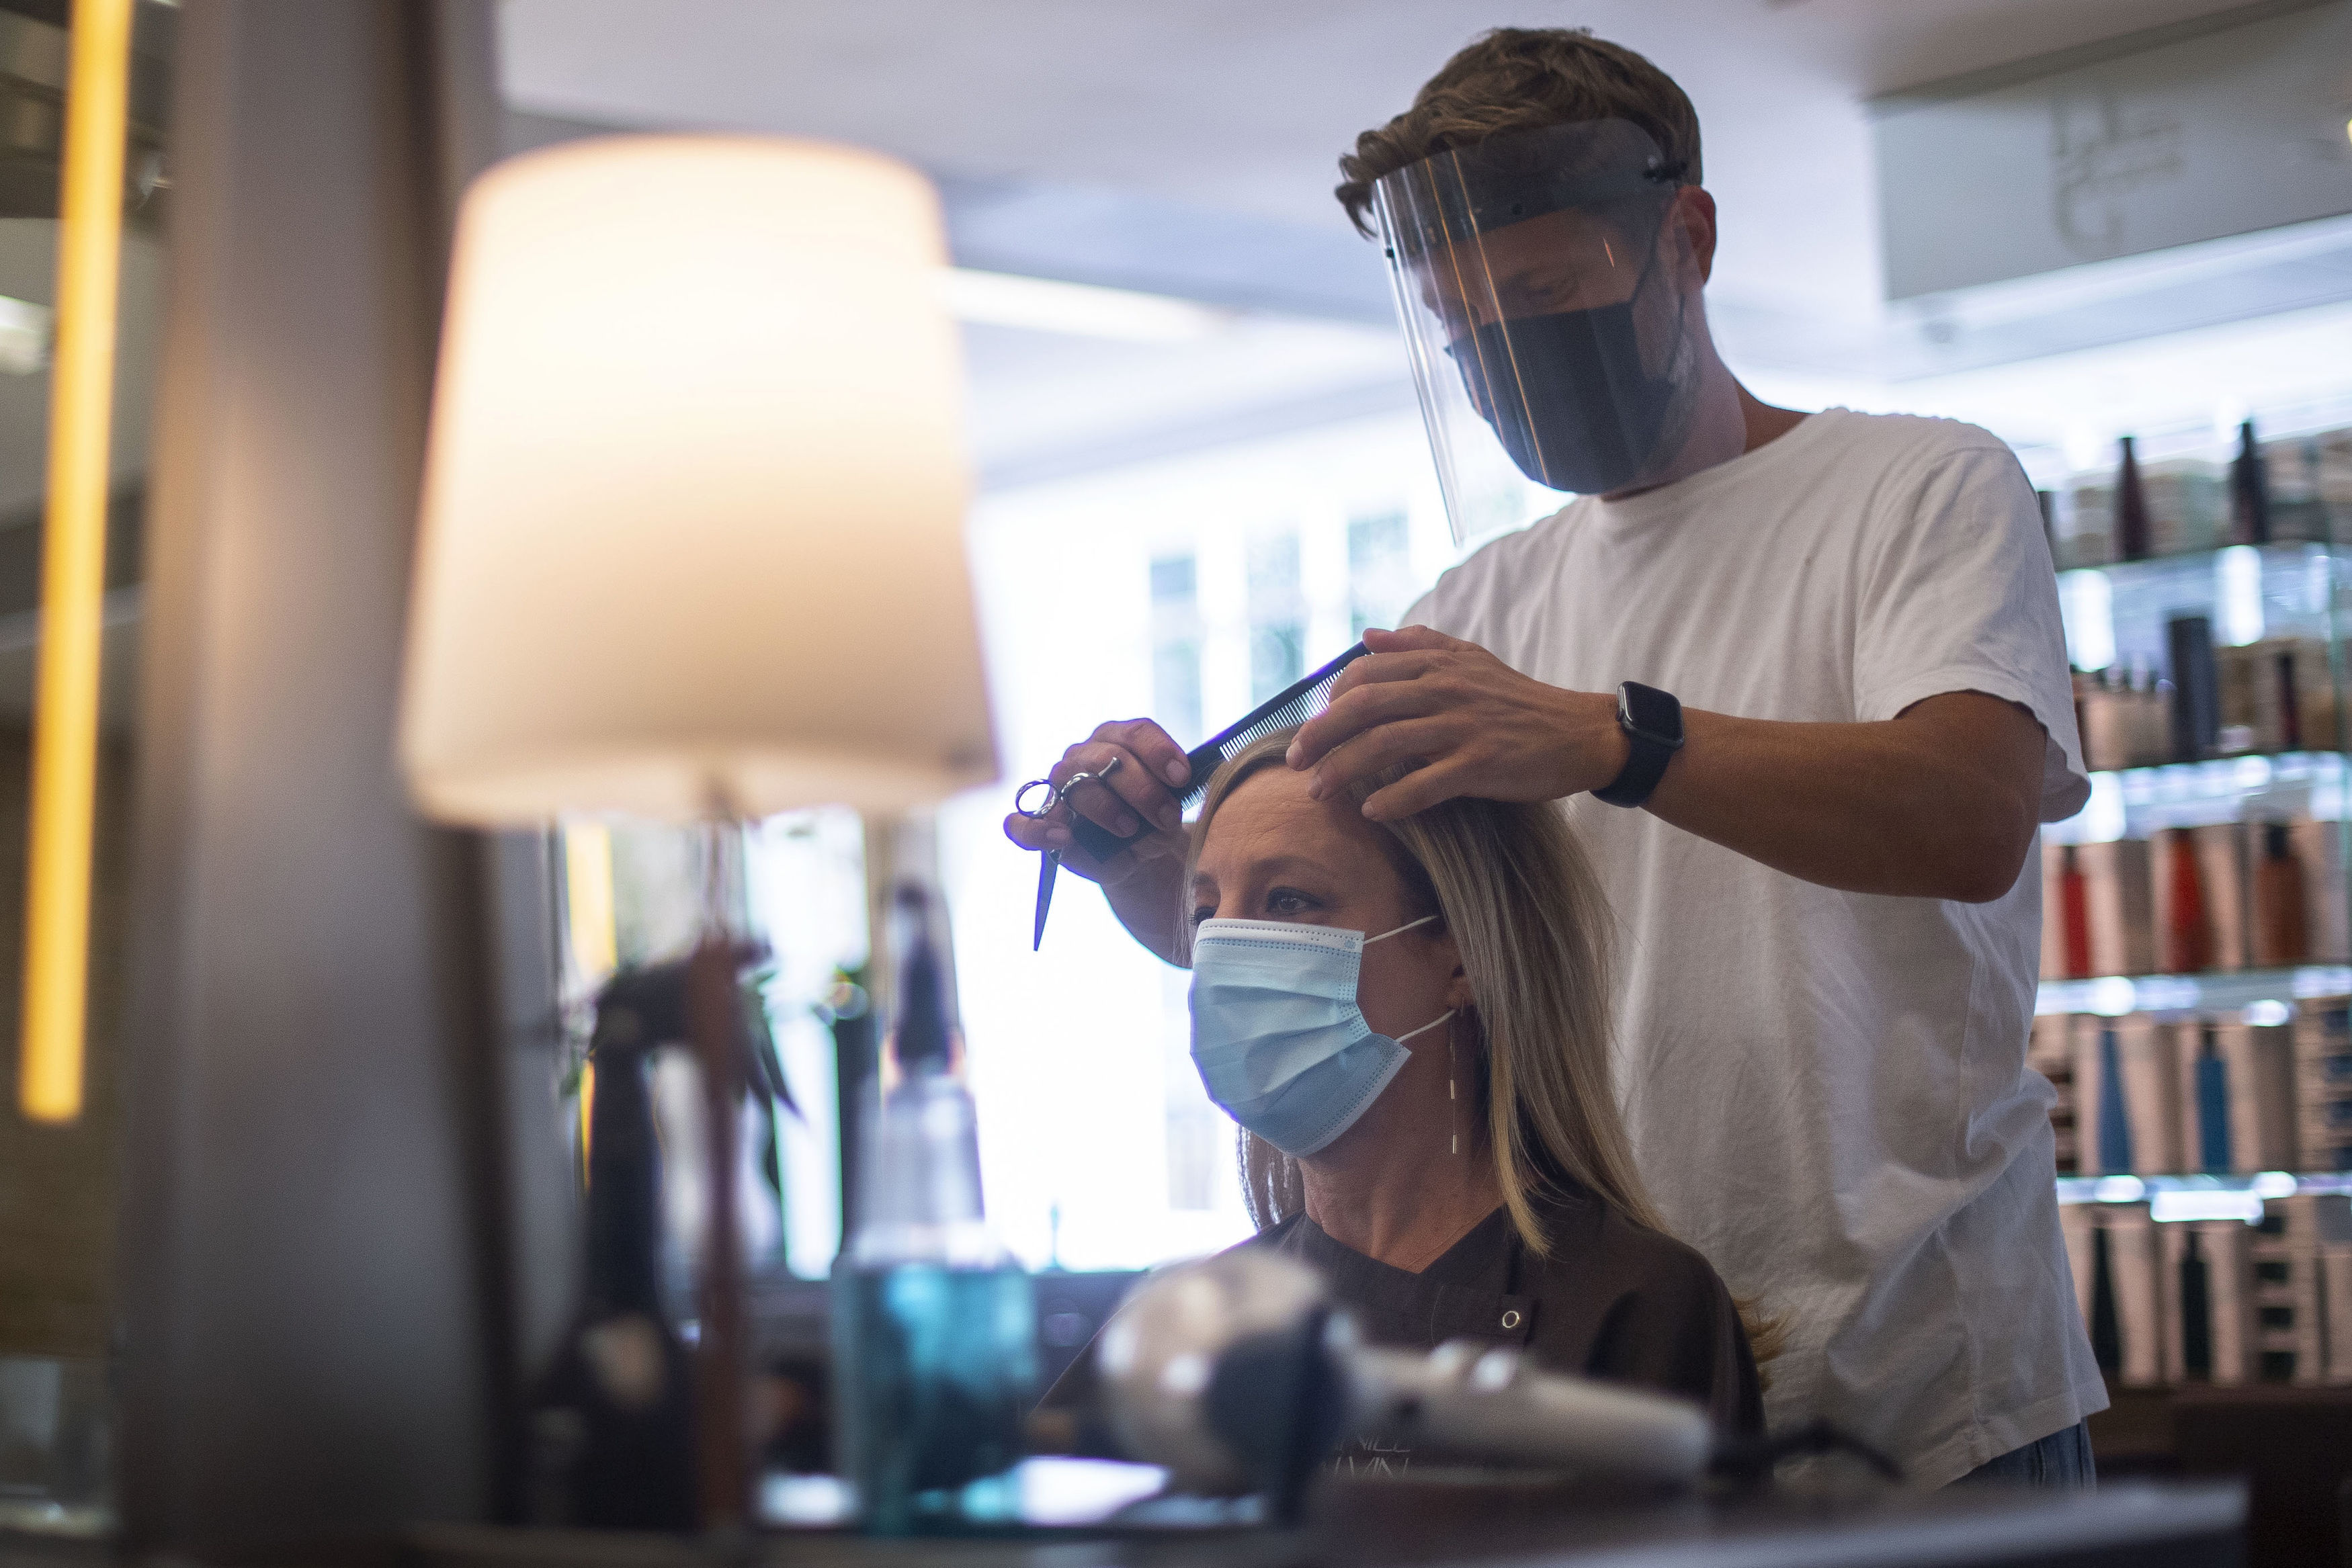 Staff will wear face masks and may ask customers to wear a mask too